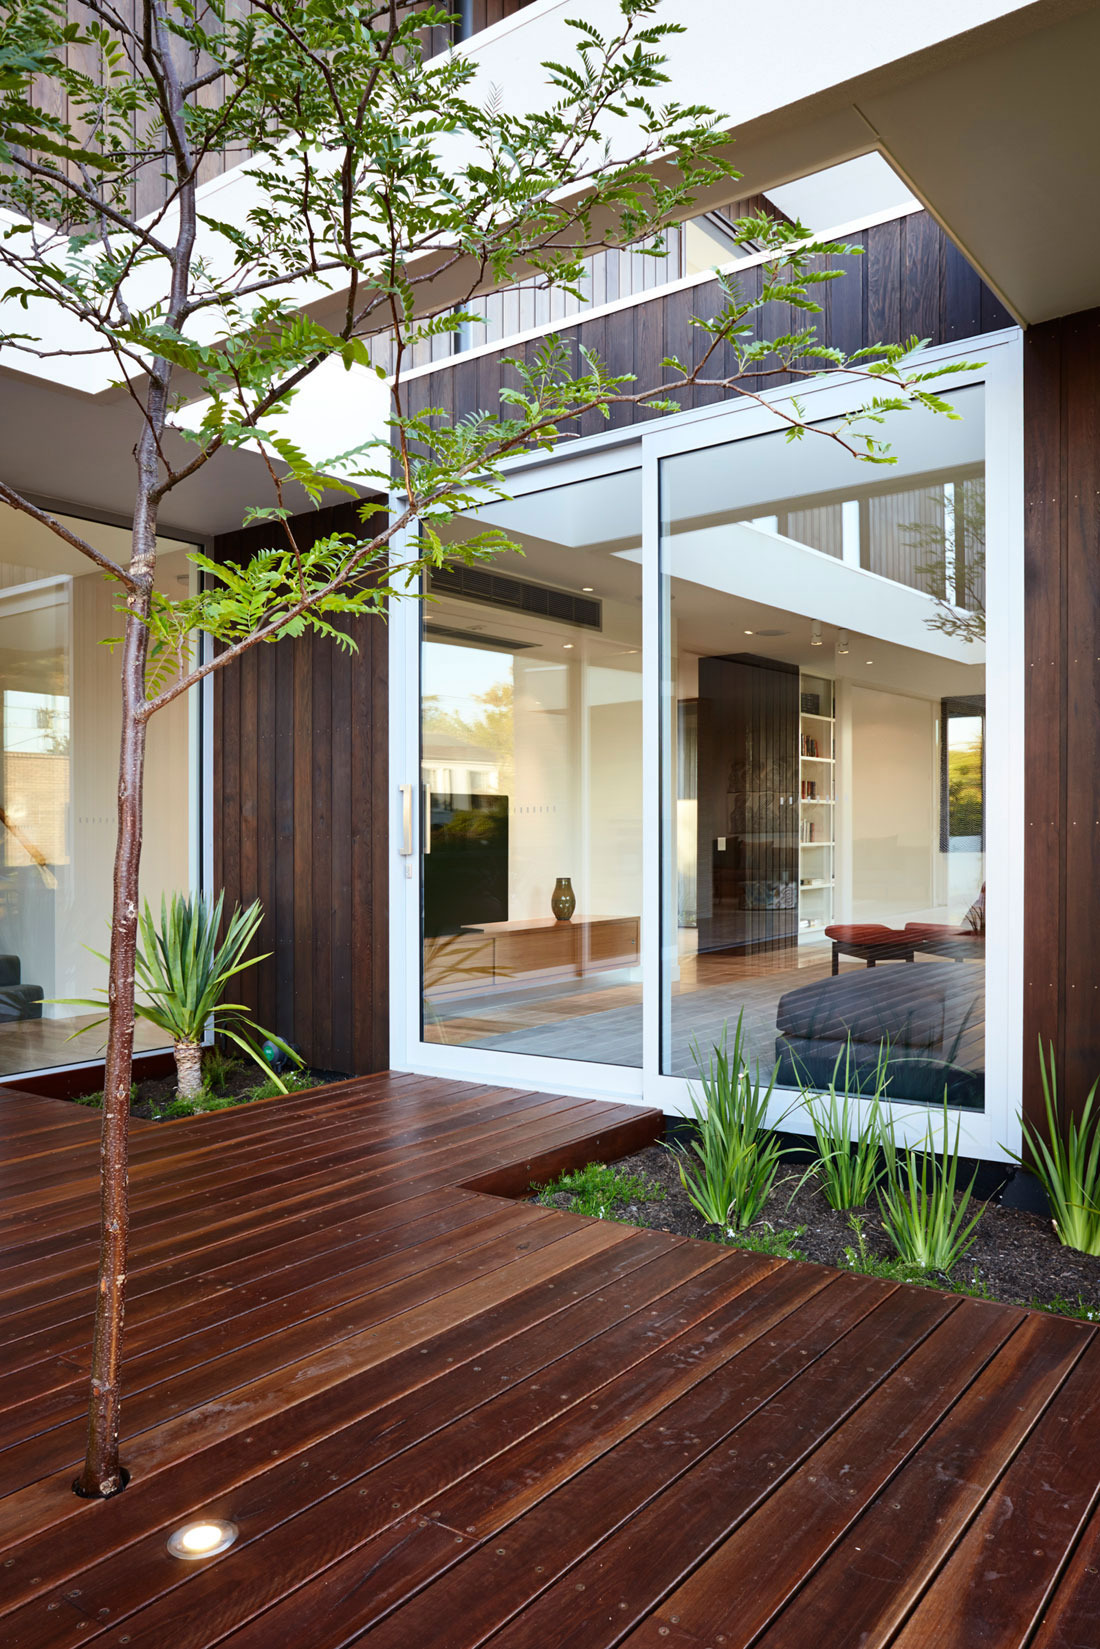 Pictures Of Beautiful Houses Inside and Outside Best Of Modern House that is Beautiful Both the Outside and the